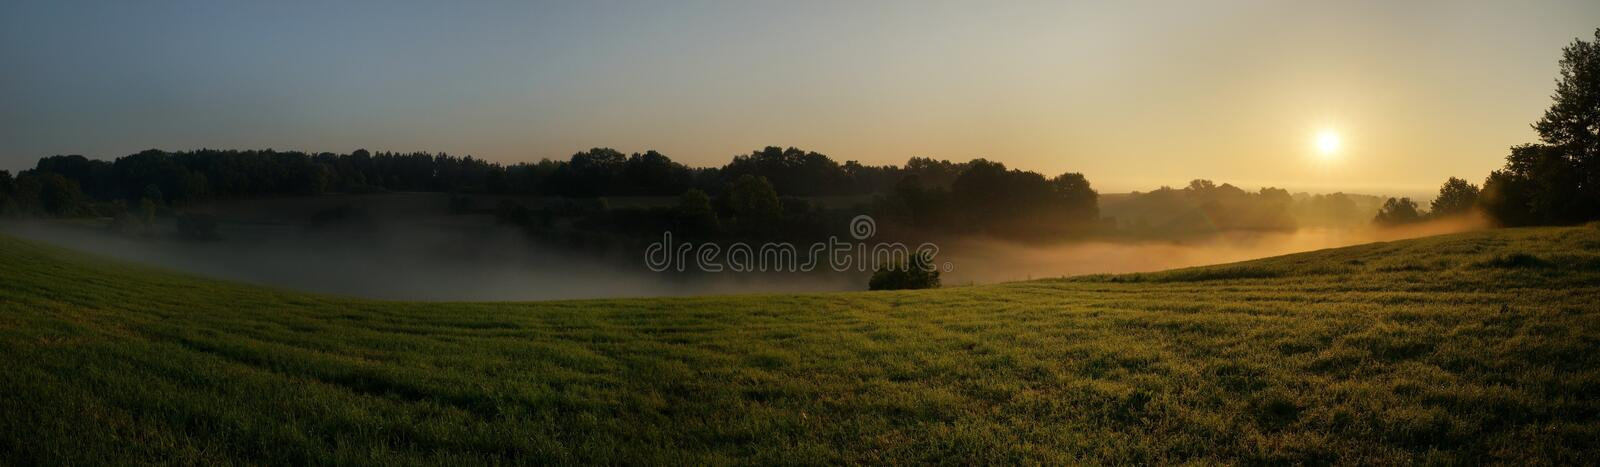 Misty grass field royalty free stock images